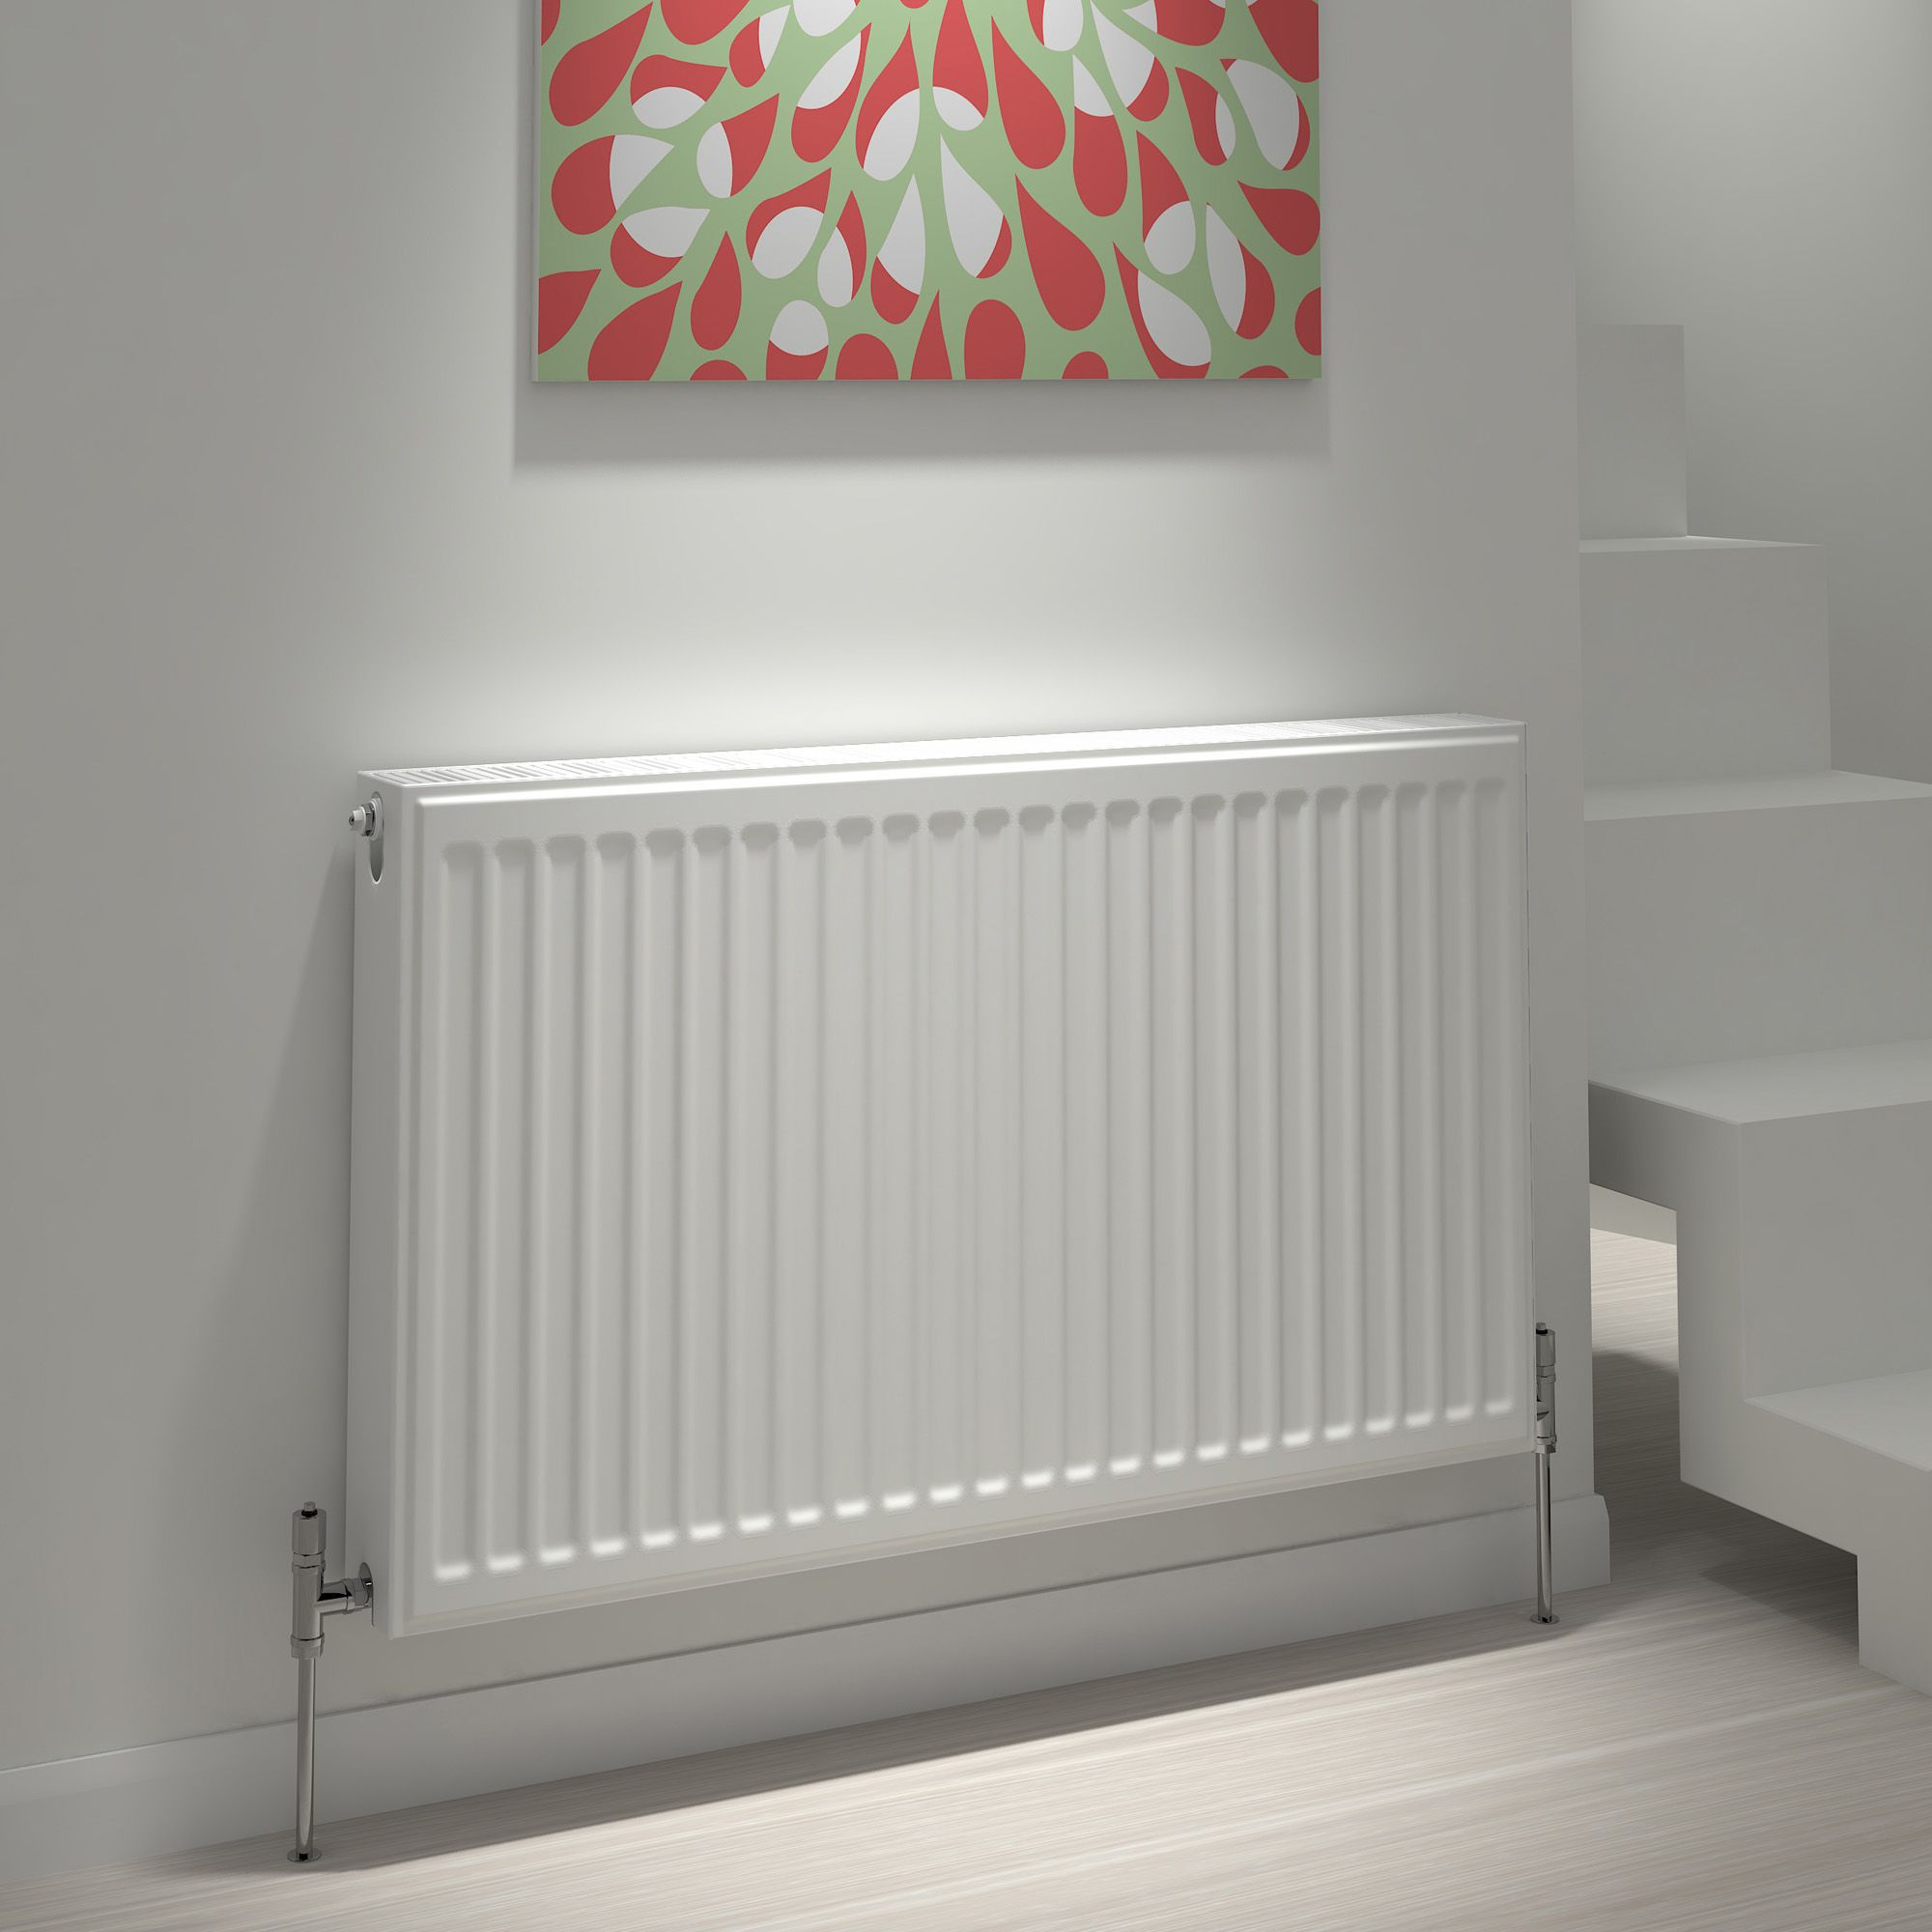 Kudox Type 22 double Panel radiator White, (H)400mm